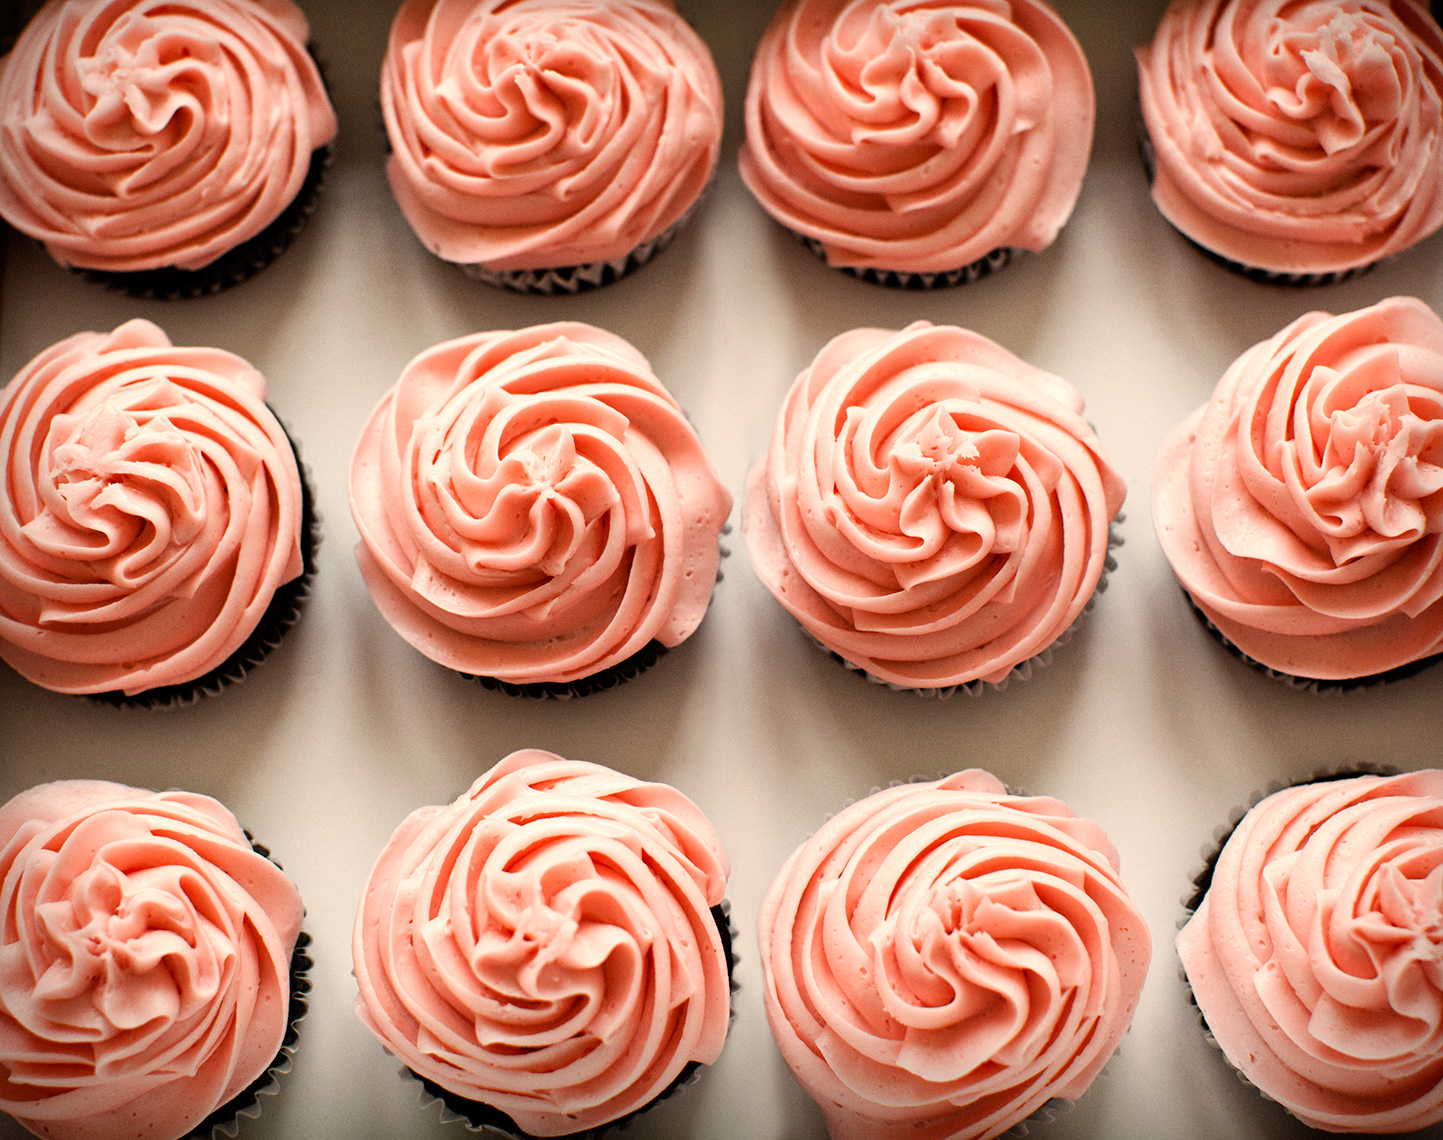 STILL LIFE OF PINK CUPCAKES | TOSCA RADIGONDA PHOTOGRAPHY